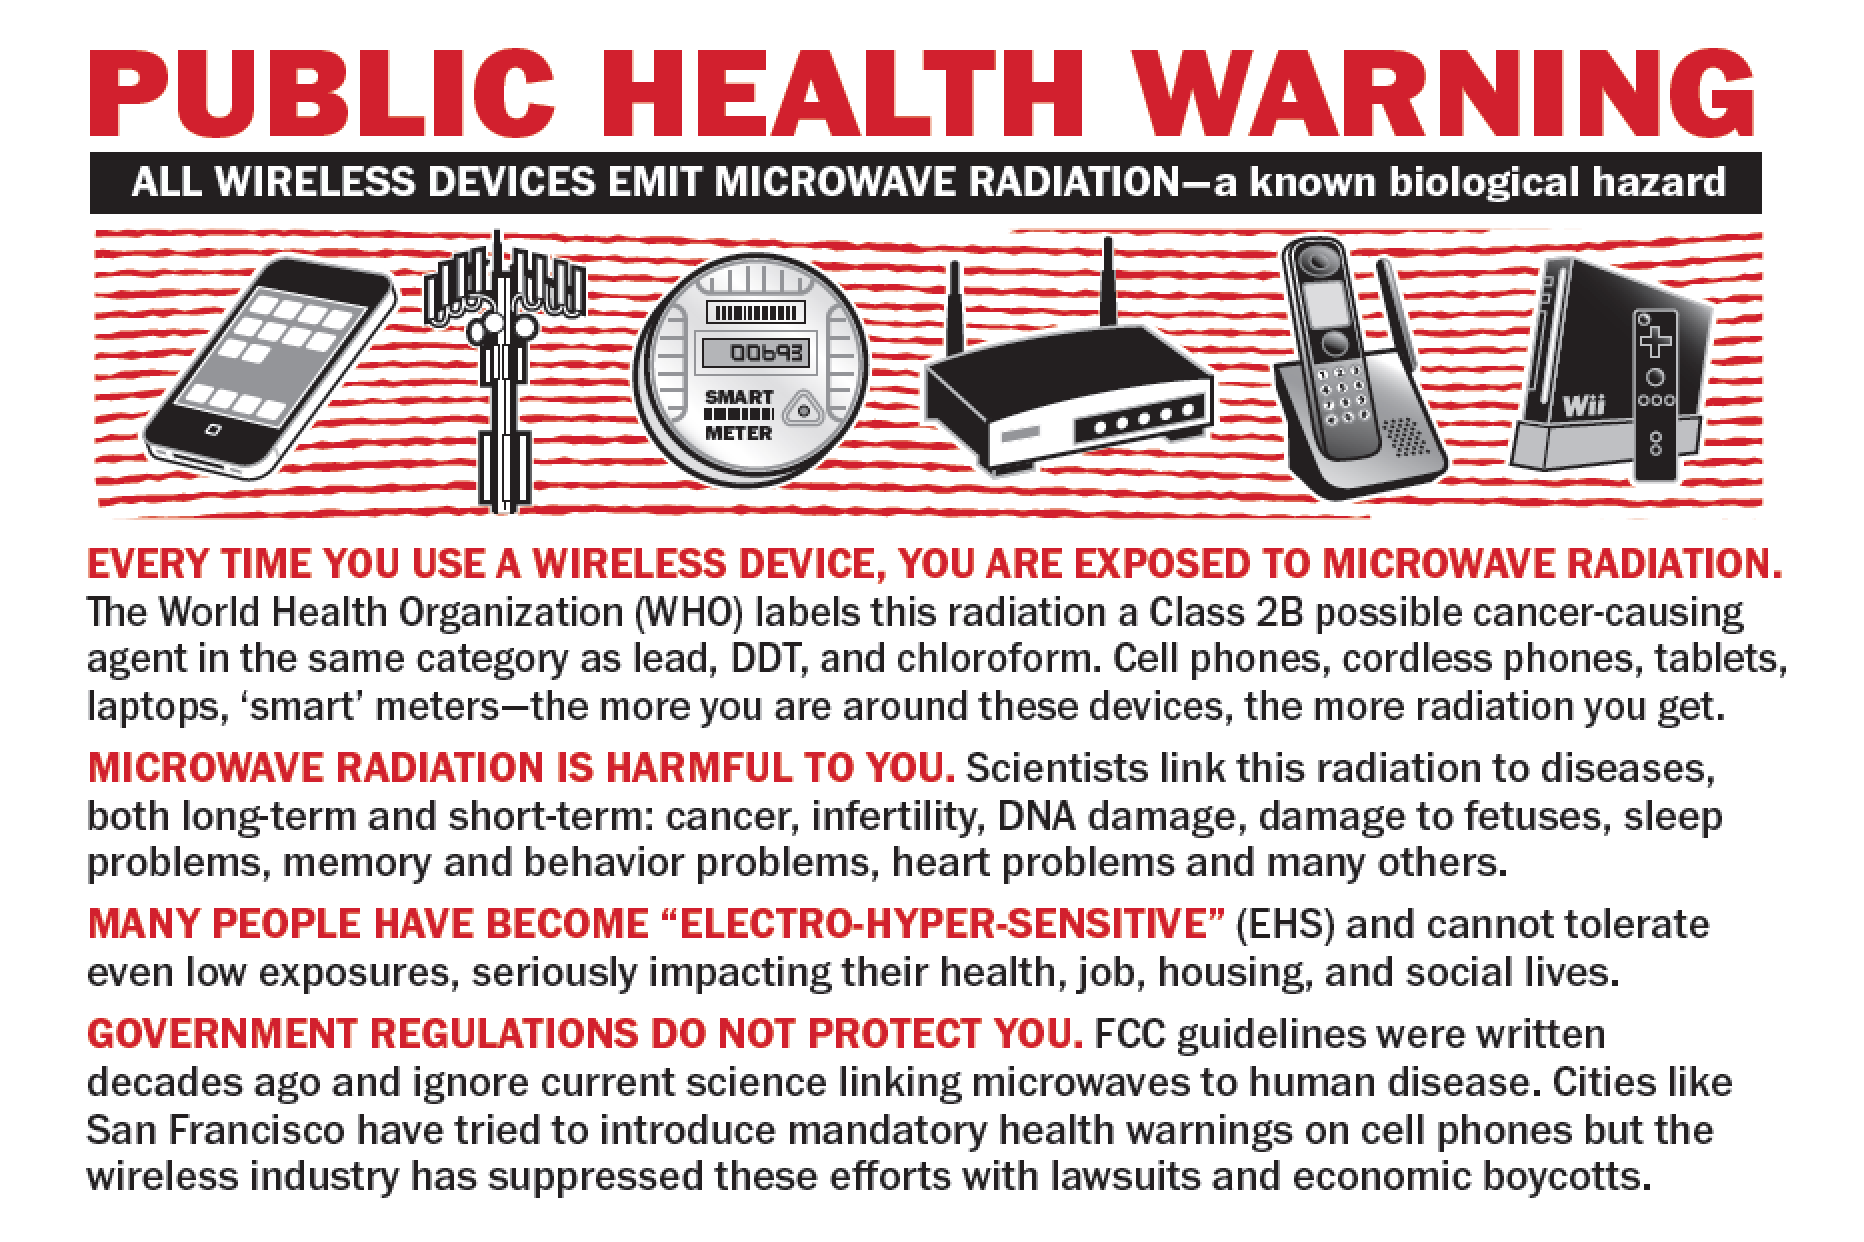 Wireless Public Health Warning Cards Now in Stock!